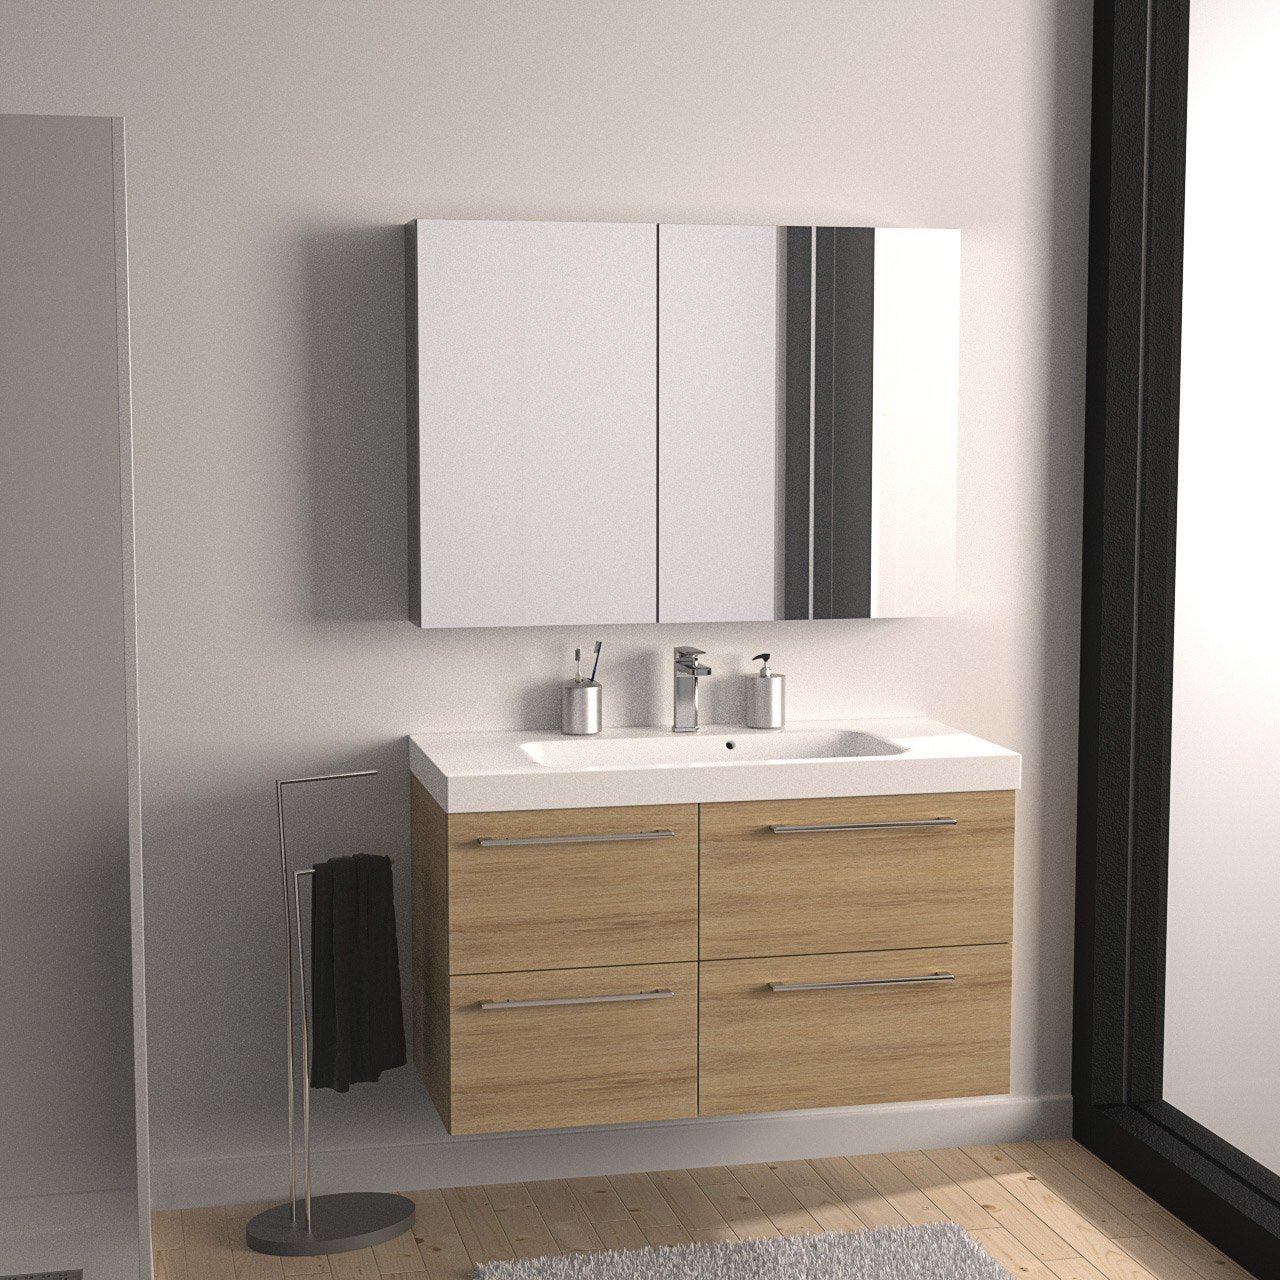 meuble de salle de bains remix imitation ch ne 106x48 5 cm 4 tiroirs leroy merlin. Black Bedroom Furniture Sets. Home Design Ideas